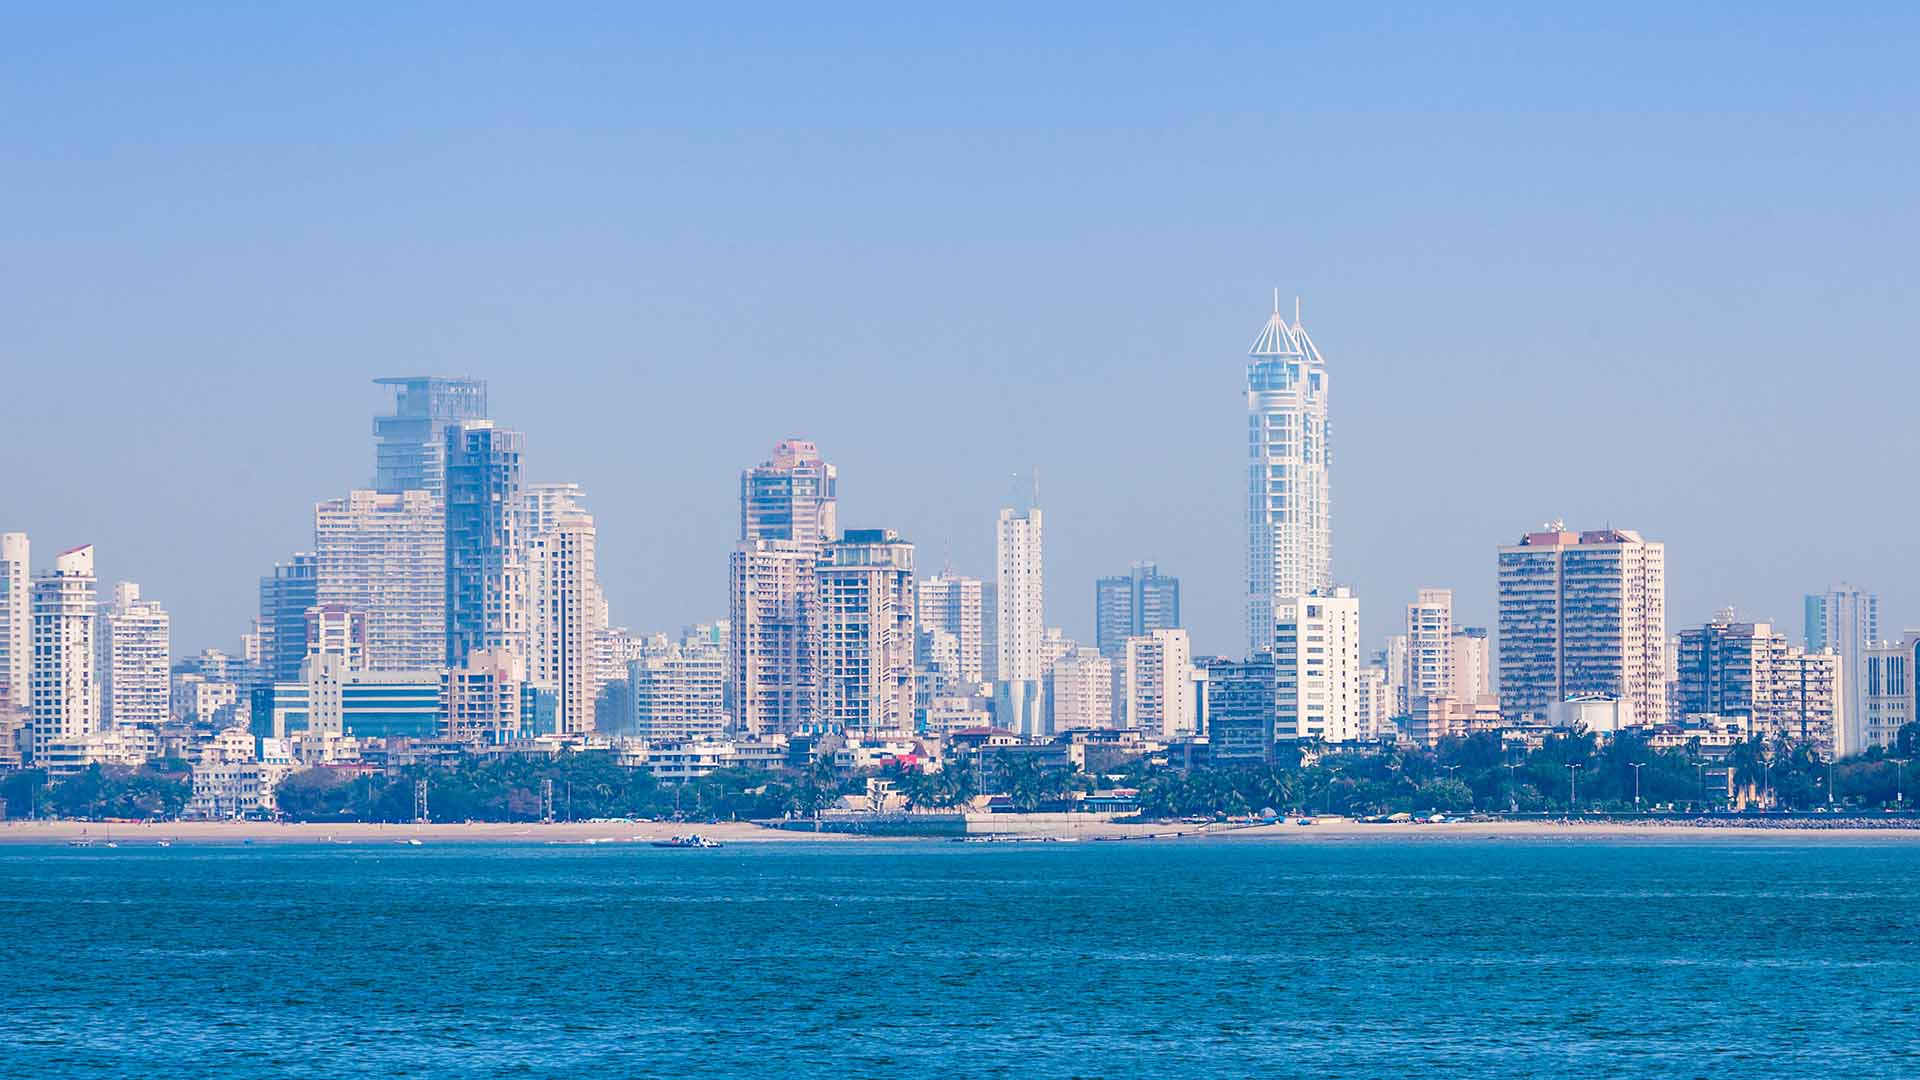 Mumbai ranks 21st in the 'City Wealth Index'